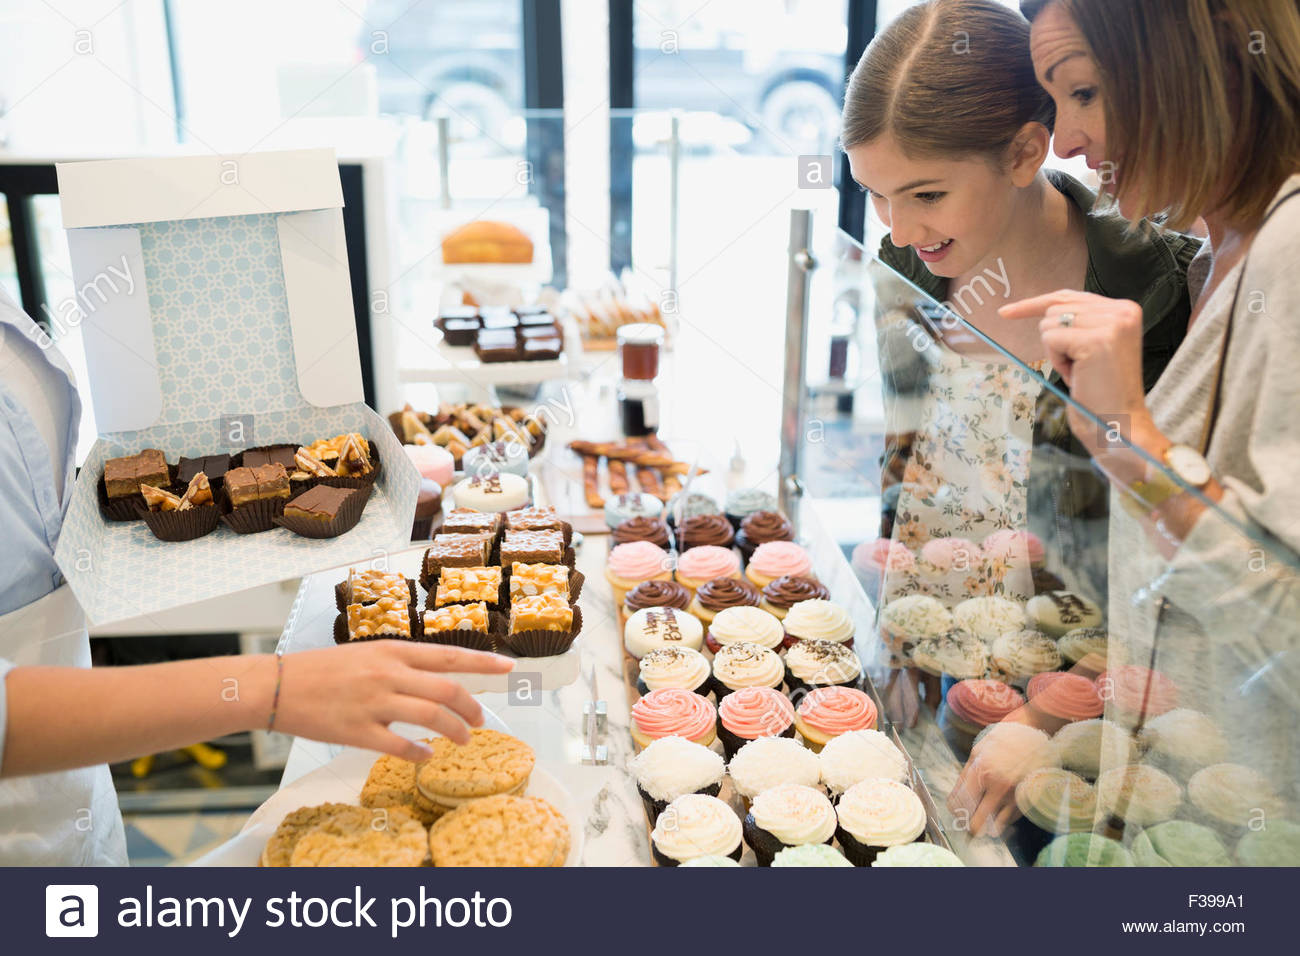 Mother and daughter choosing sweets in bakery - Stock Image